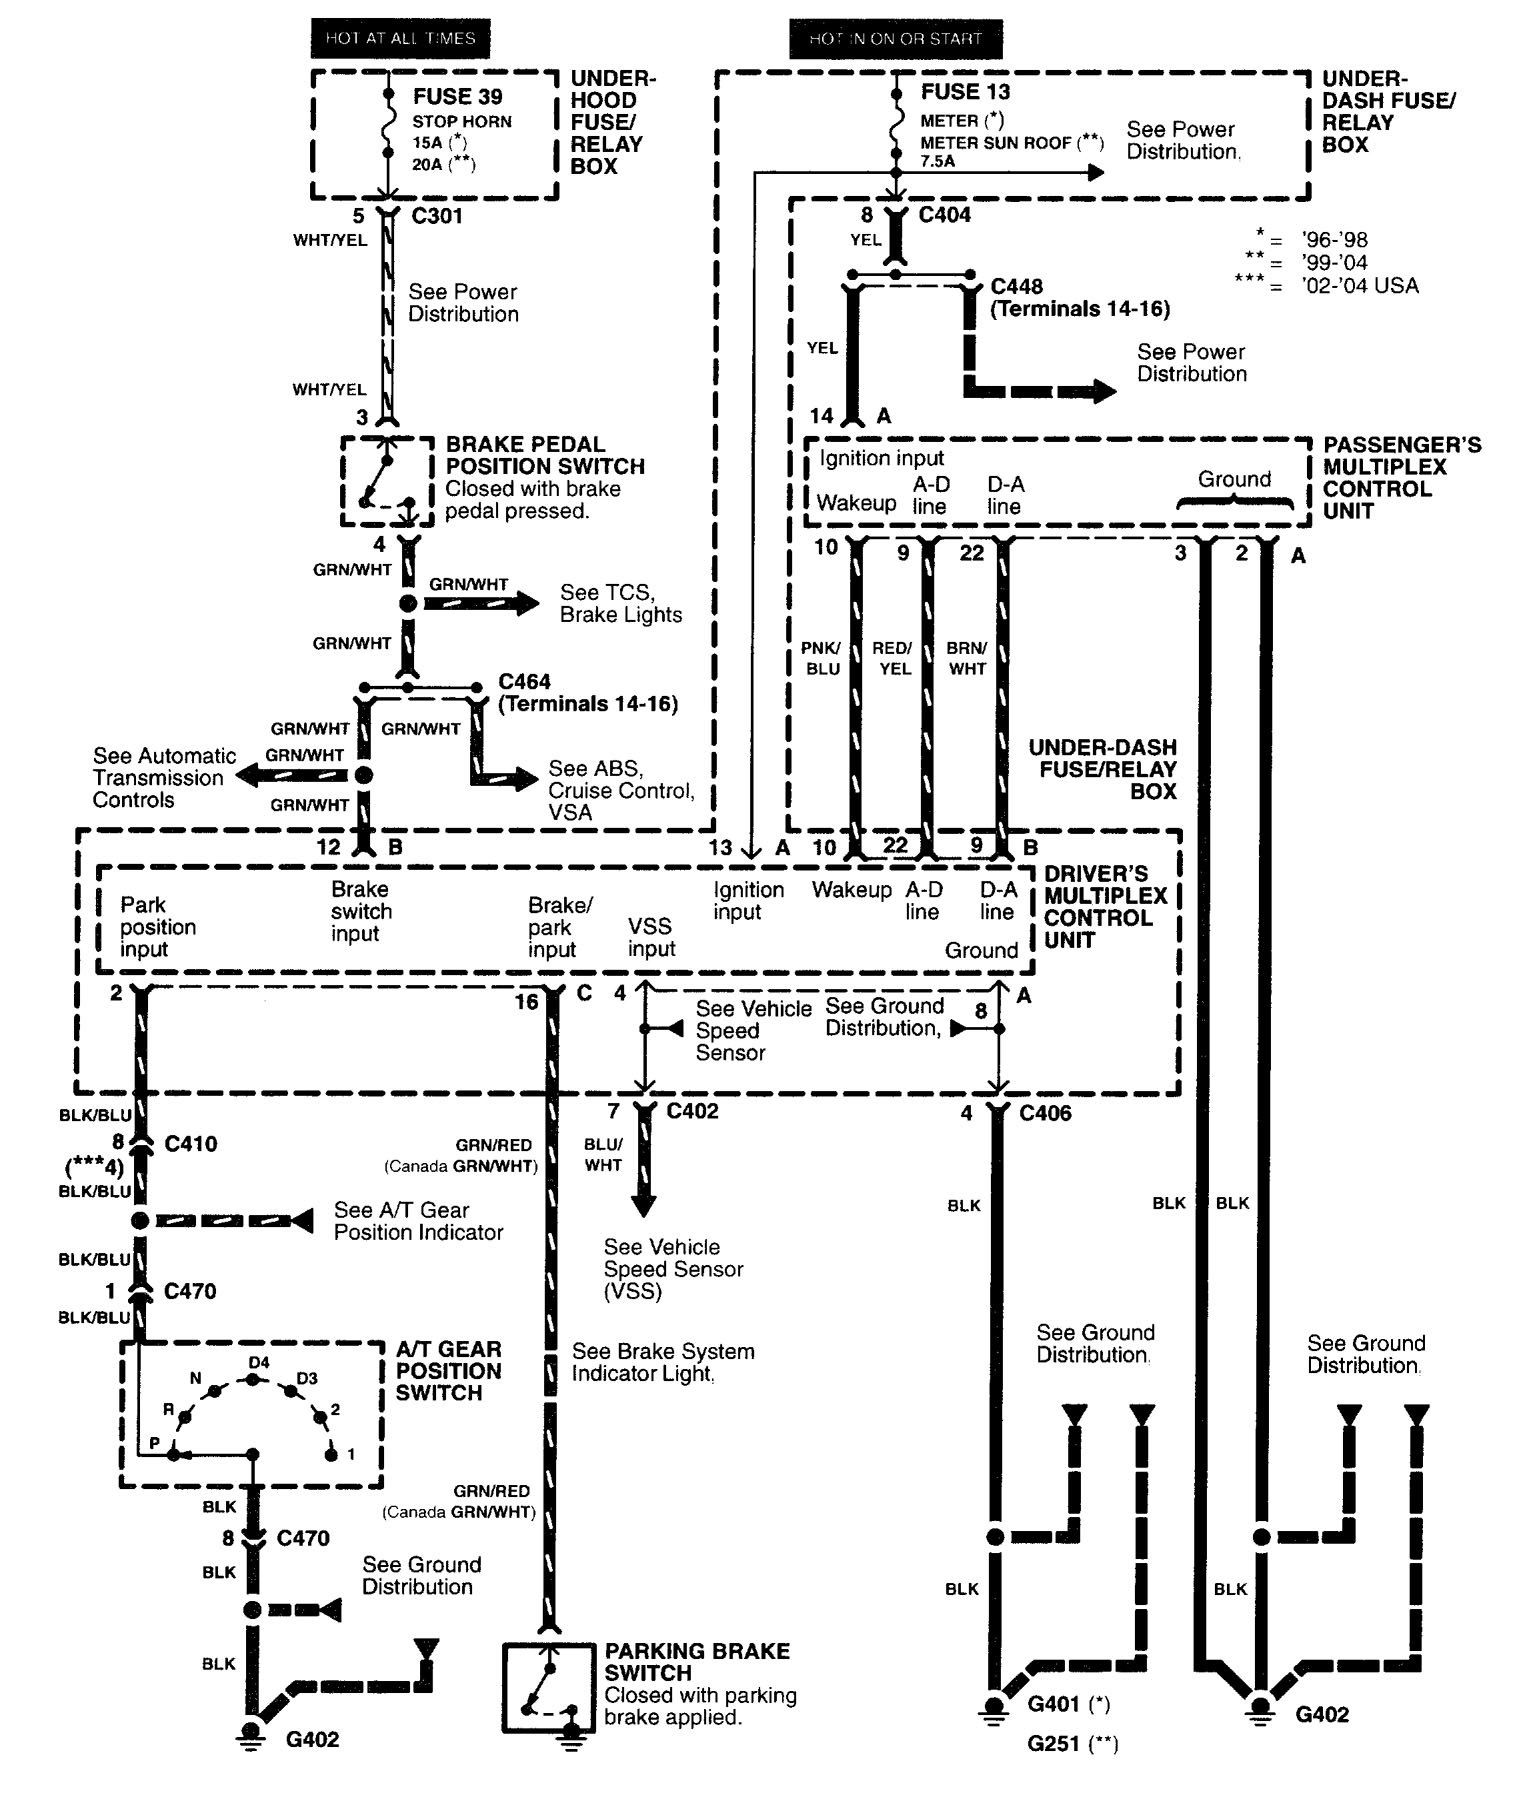 Acura Ac Wiring Diagrams - Best Place to Find Wiring and Datasheet on ac electrical circuit diagrams, ac manifold diagram, ac schematic diagram, ac refrigerant cycle diagram, ac assembly diagram, ac light wiring, ac wiring circuit, ac system wiring, ac heating element diagram, ac motors diagram, ac solenoid diagram, ac wiring code, ac regulator diagram, ac installation diagram, ac heater diagram, ac wiring color, ac air conditioning diagram, ac receptacles diagram, ac ductwork diagram, circuit breaker diagram,